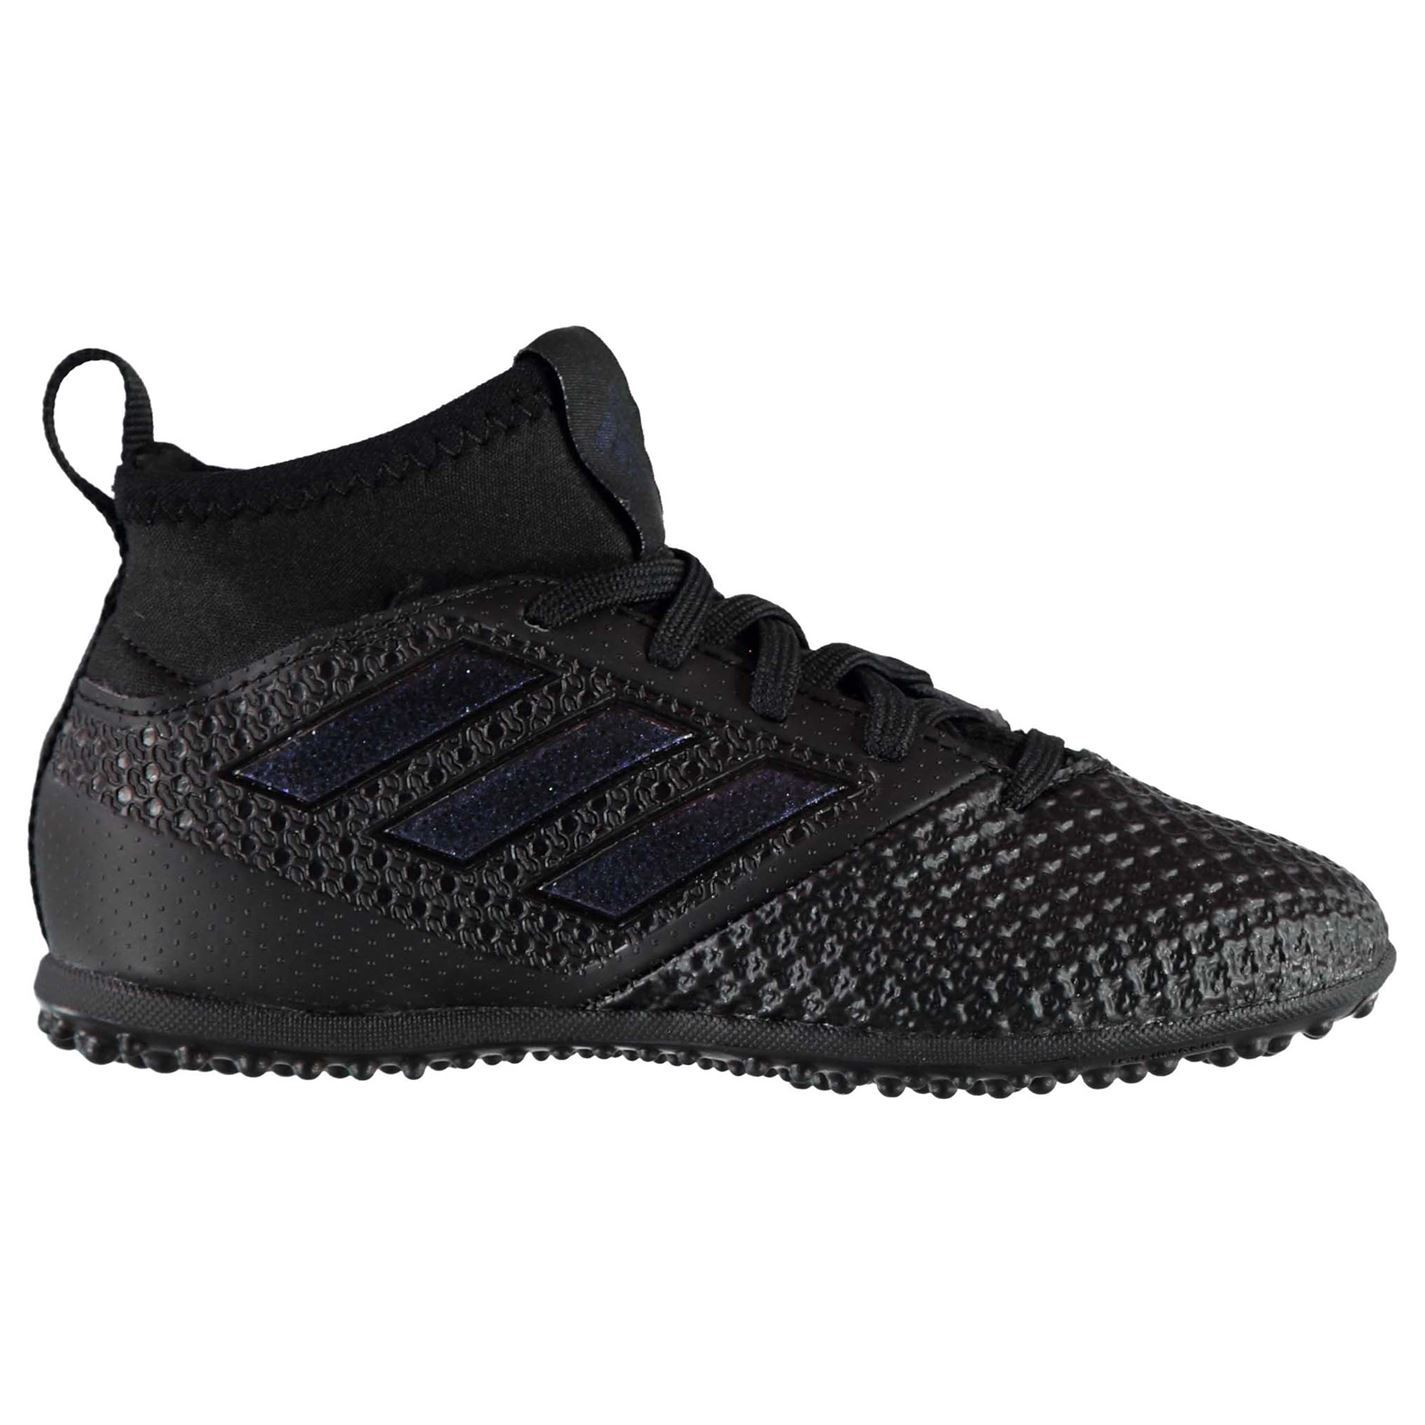 on sale 73917 78790 ... fg sizes 10c 2.5 a7371 cb366  sweden adidas ace tango 17.3 junior turf  boots black 1. about this product. picture